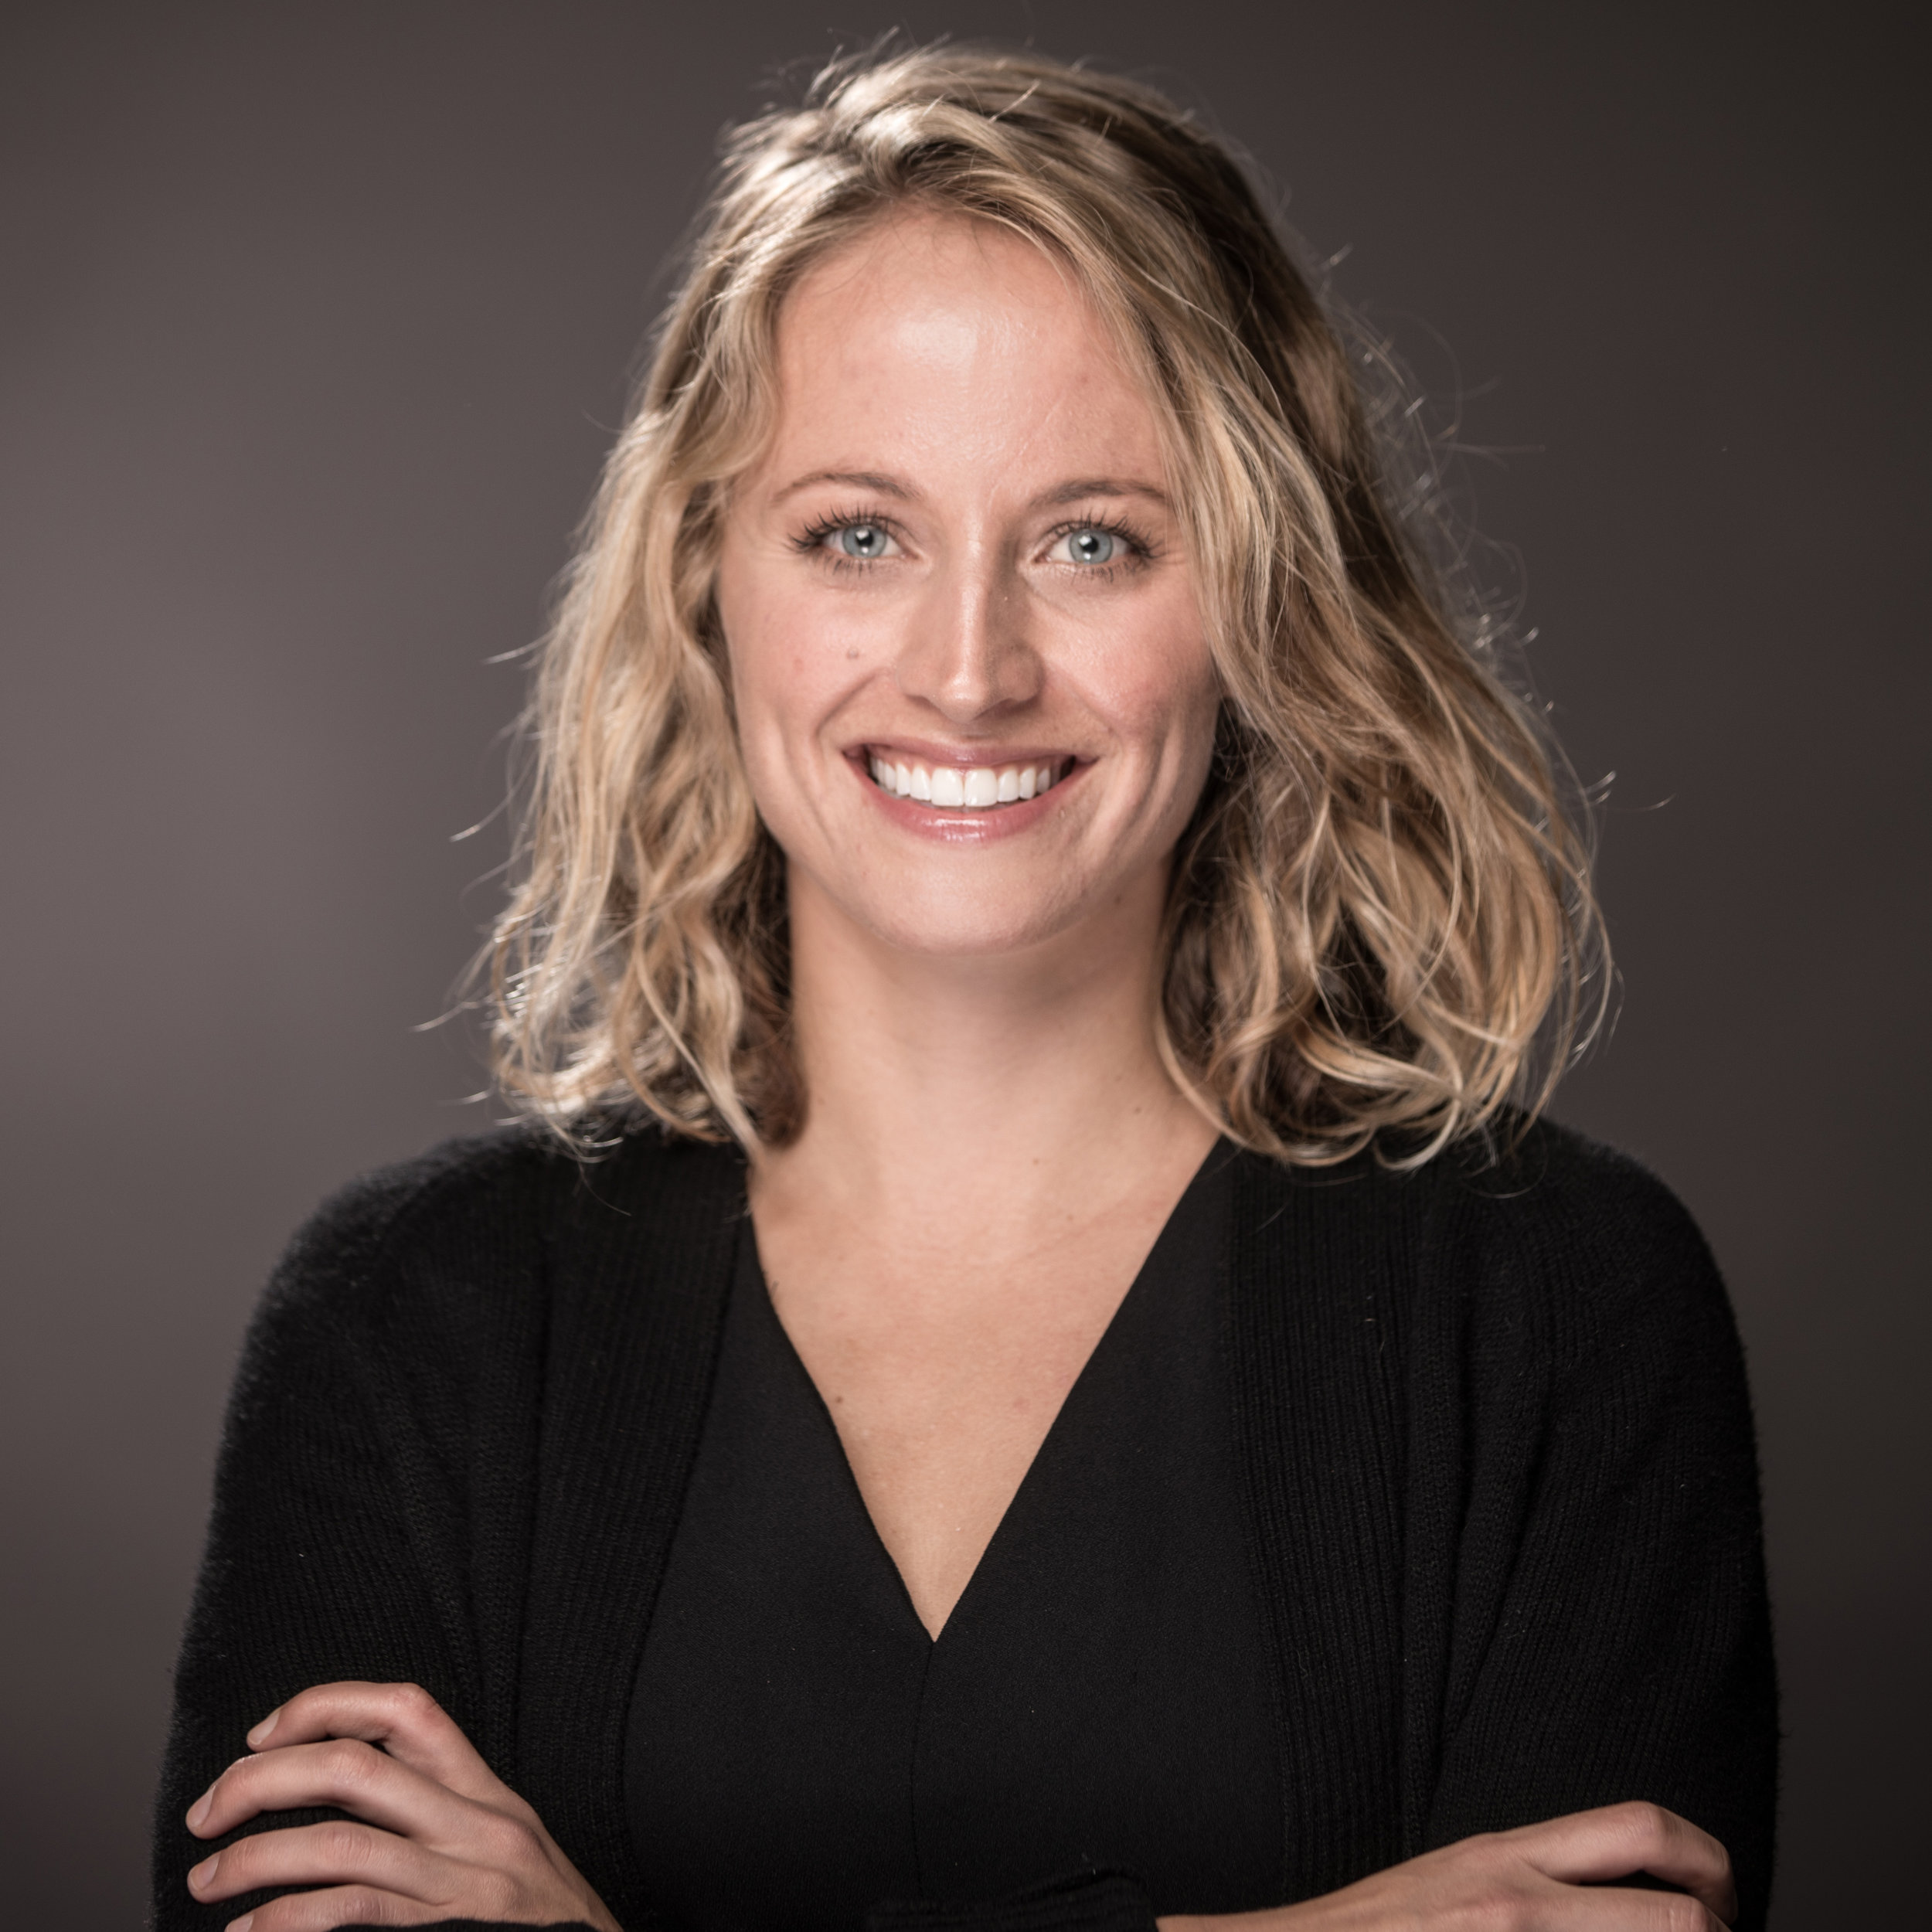 KENDALL BEVERIDGE, Facebook How to Build a Kickass Team at Work Through Creativity, Collaboration and <wait for it...> Emotional Vulnerability (eek!)  @kendallbev  >  BIO